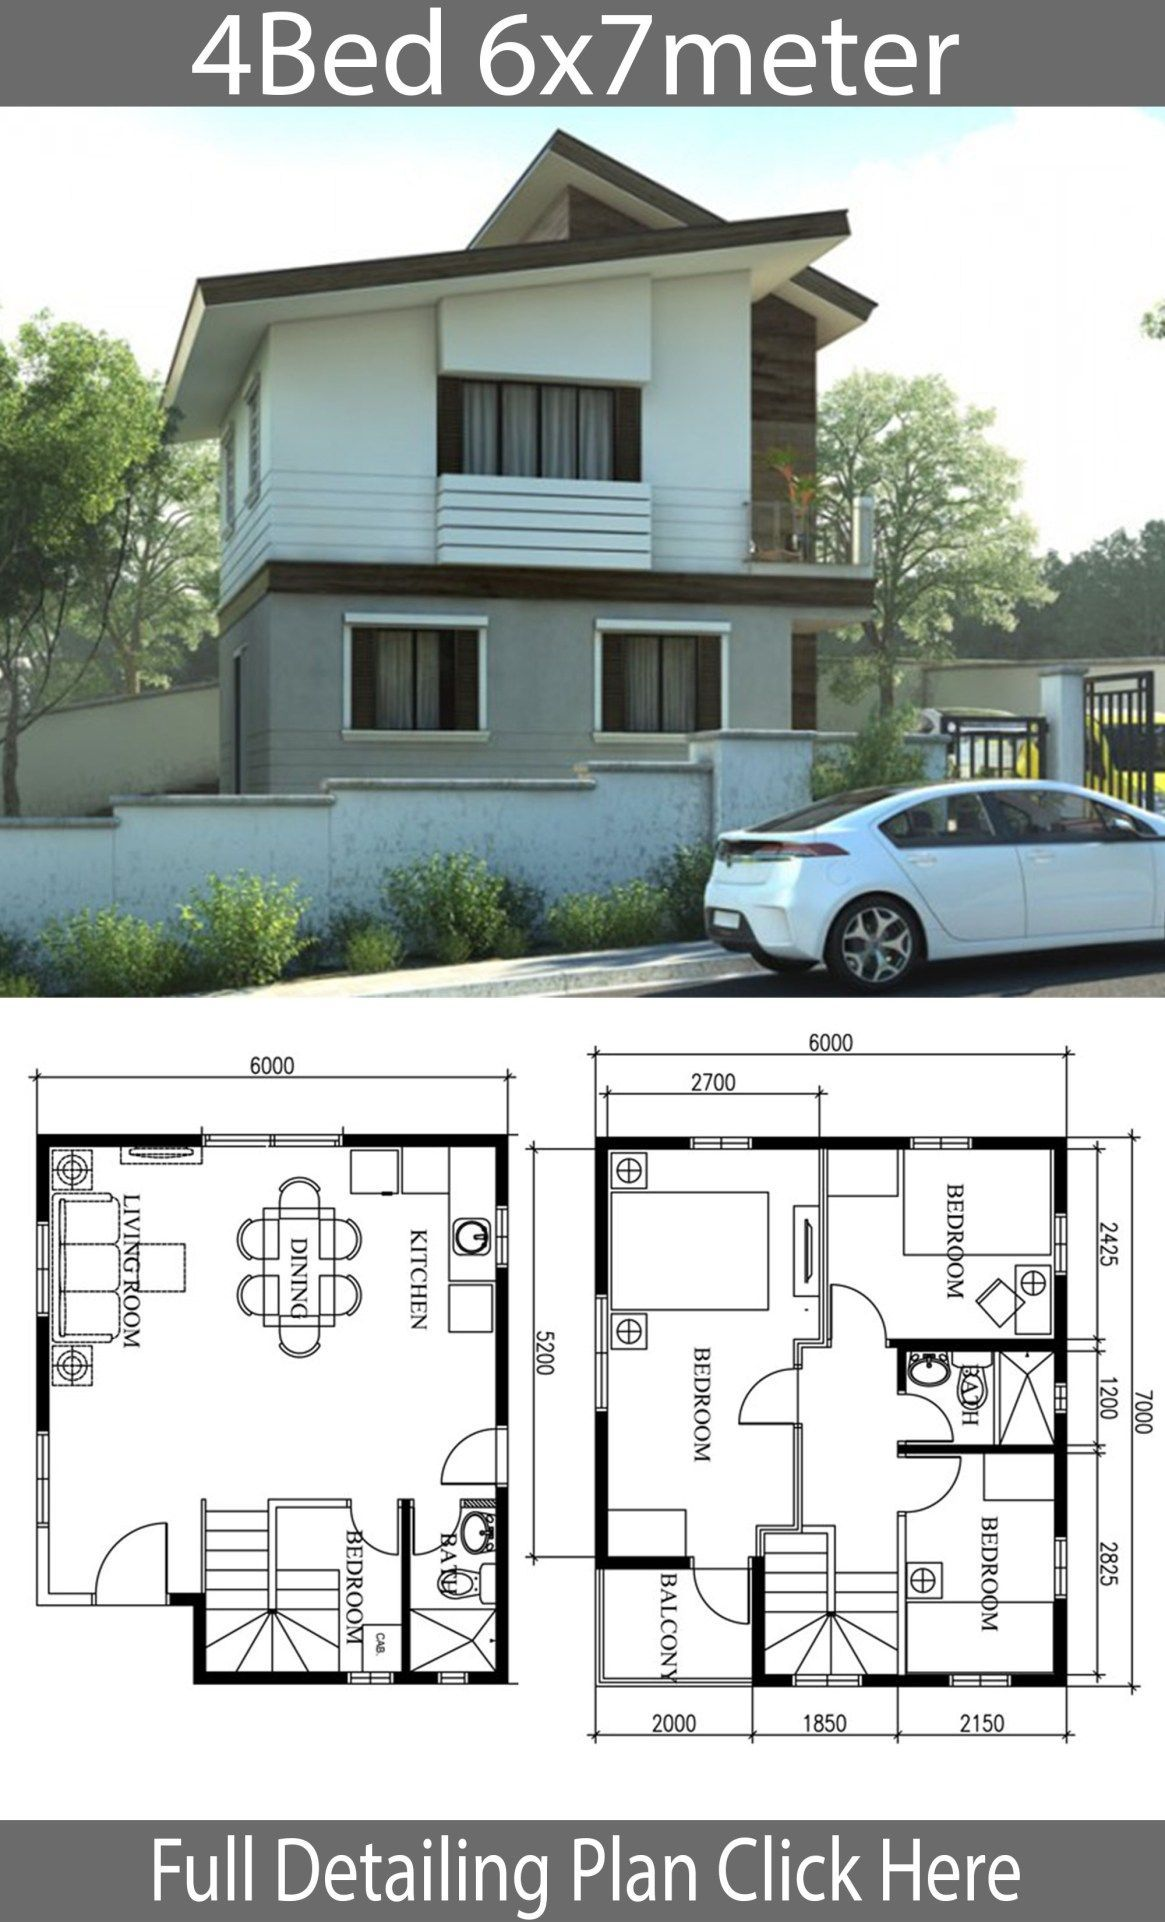 Small Home Design Plan 6x7m With 4 Bedrooms Home Design With Plansearch Kitchendesign7x4 Arsitektur Rumah Impian Denah Rumah